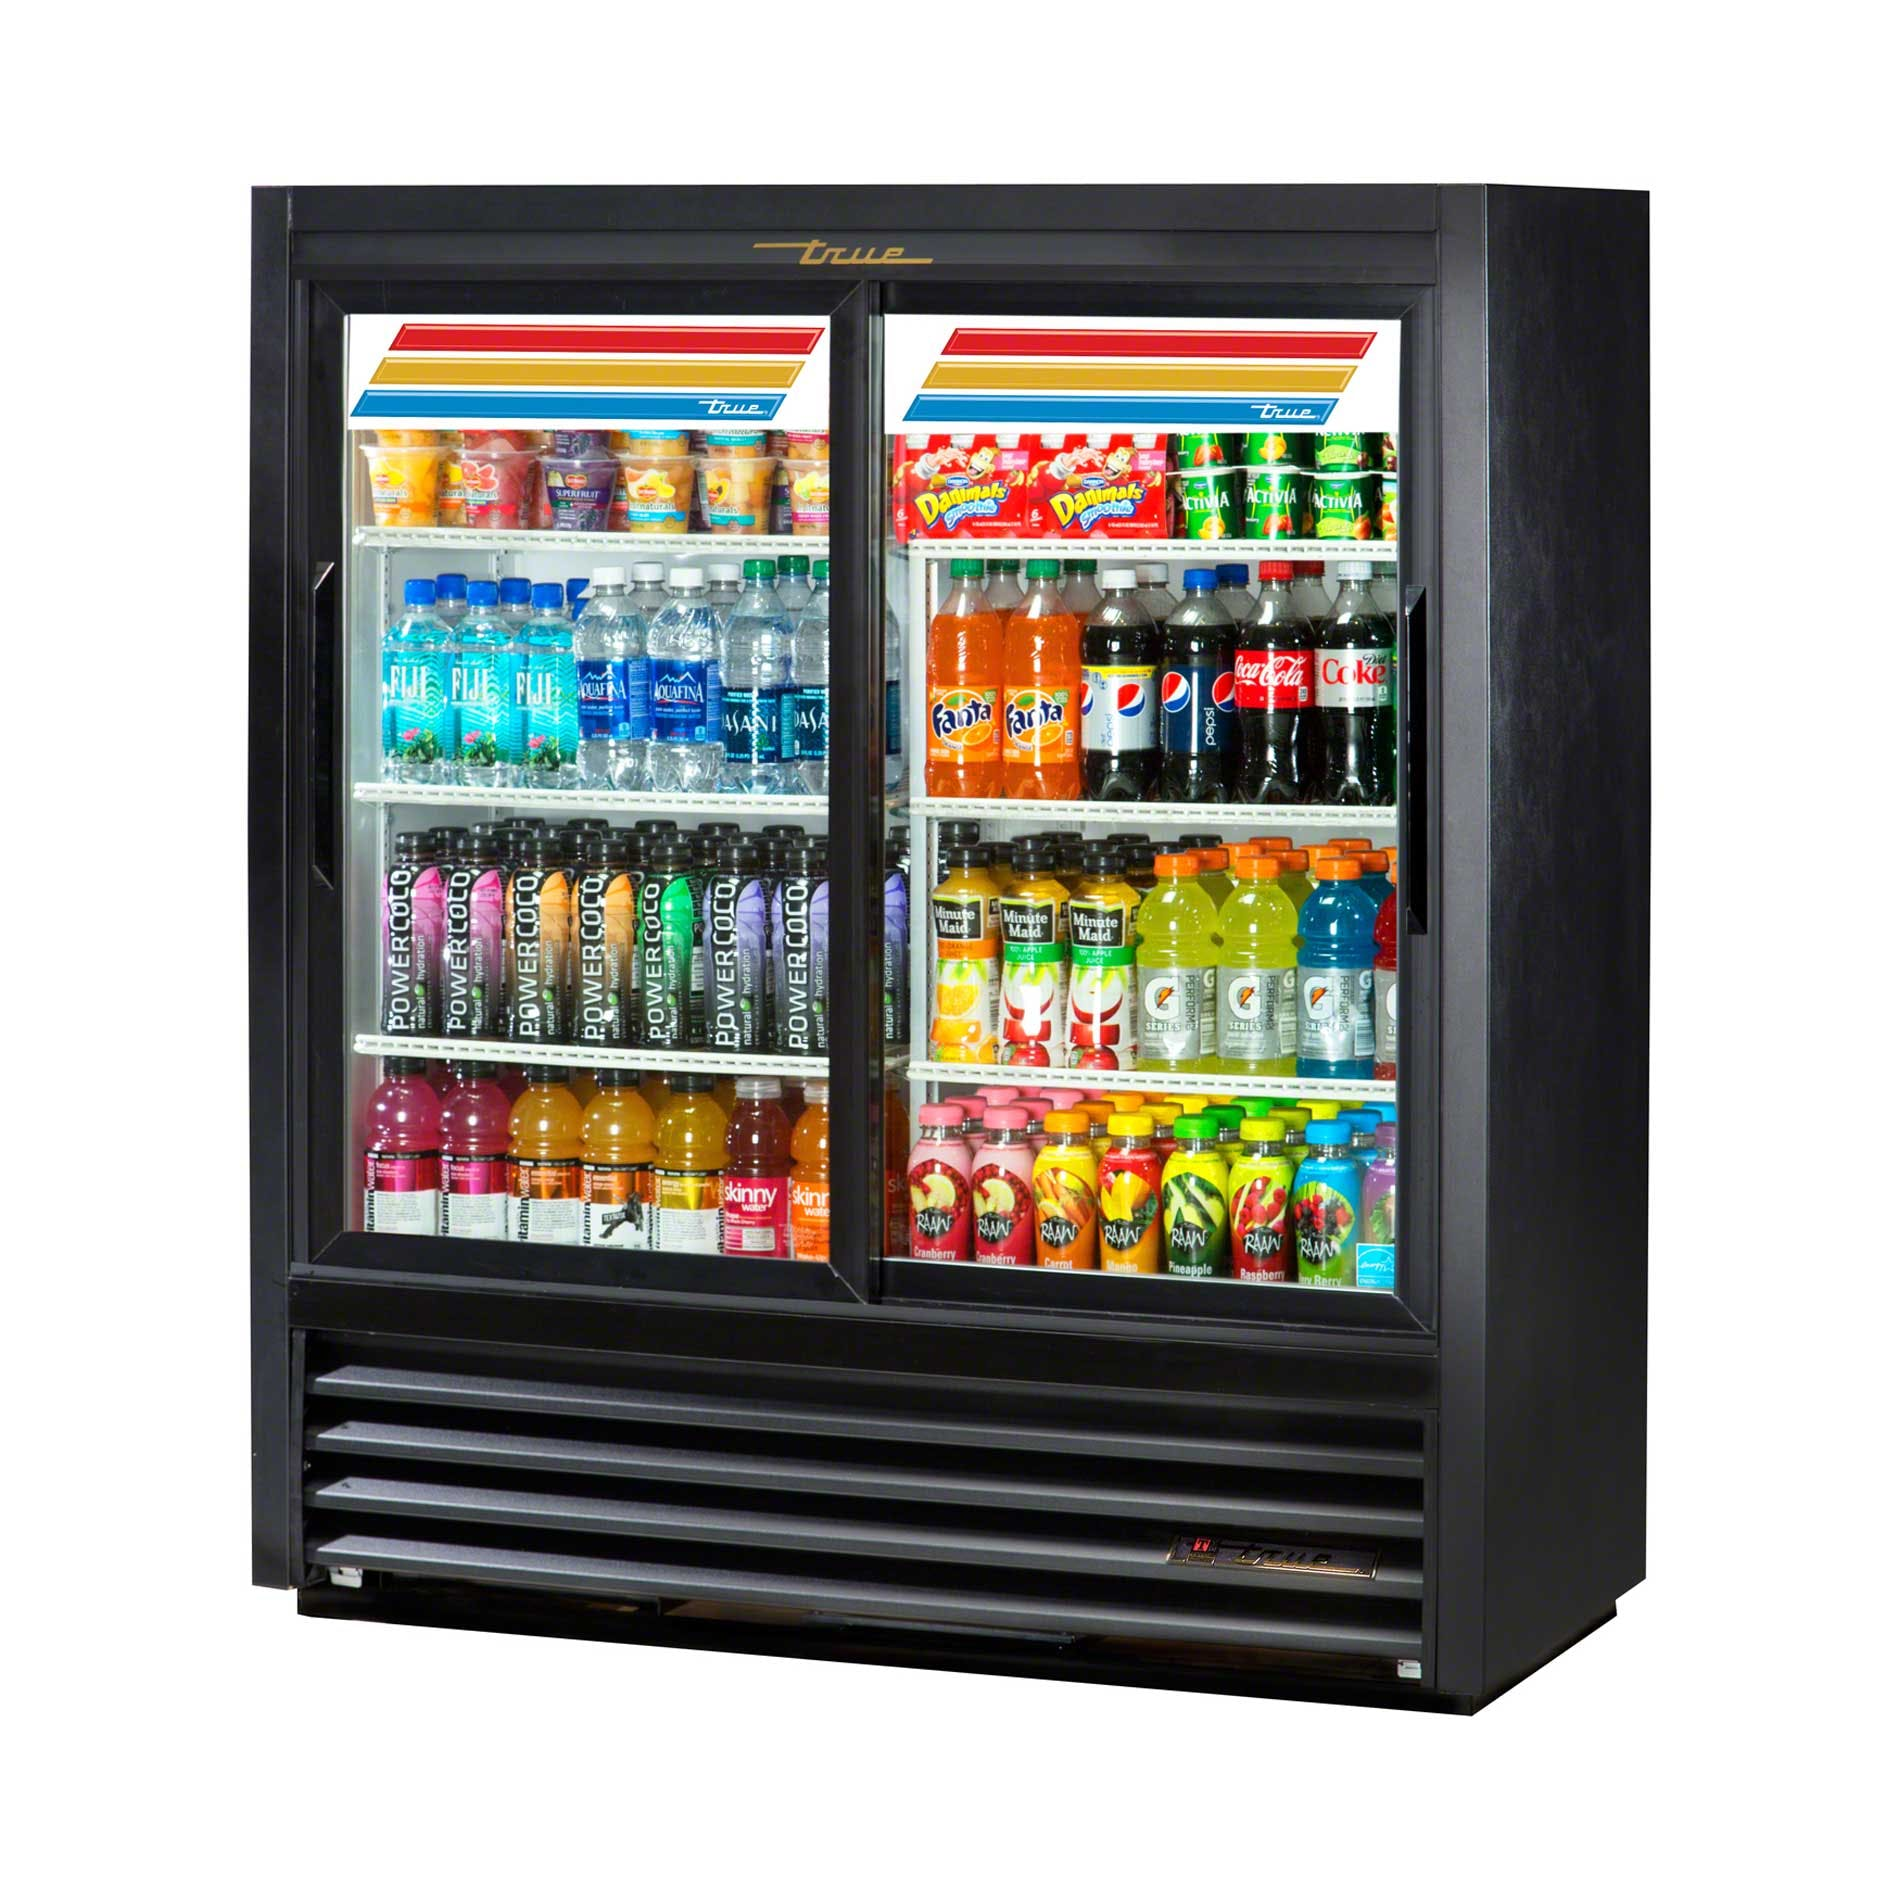 "True - GDM-41SL-54-LD 47"" Convenience Store Glass Door Merchandiser Refrigerator LED Commercial refrigerator sold by Food Service Warehouse"